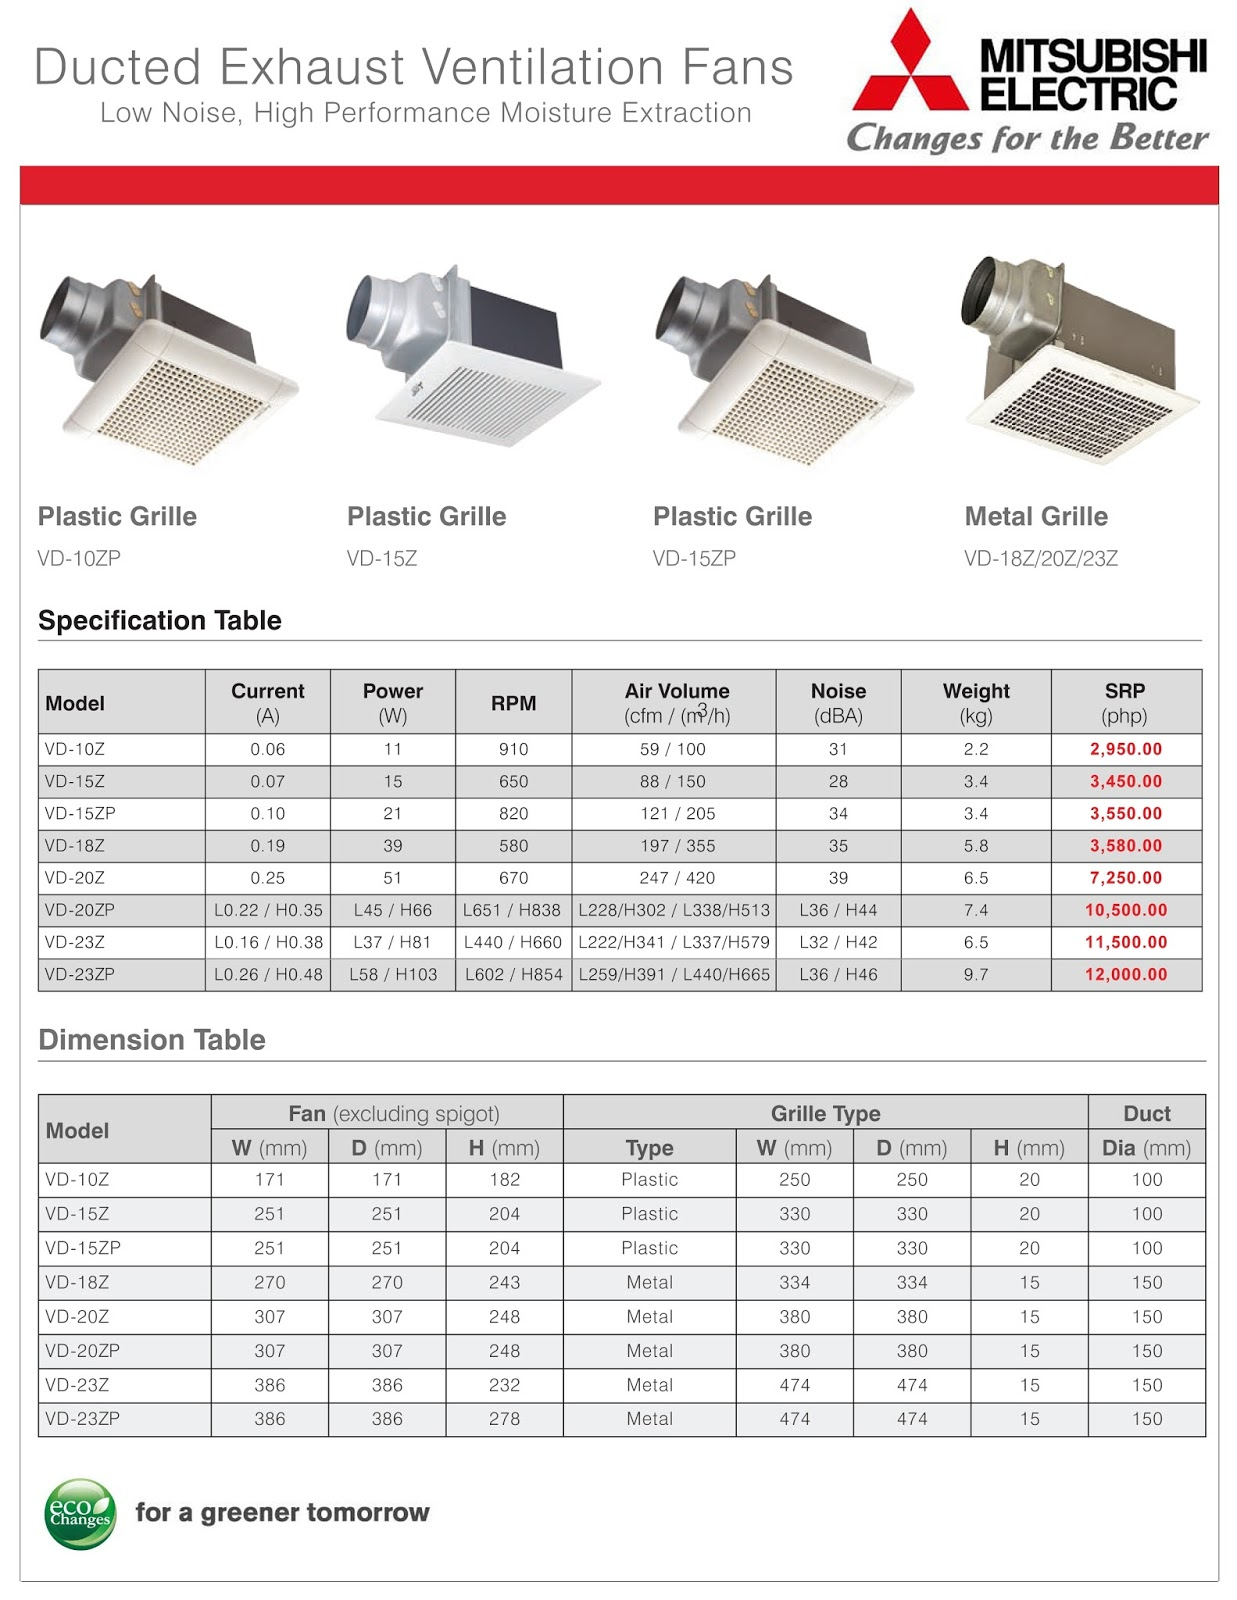 Maximax Systems: MITSUBISHI ELECTRIC DUCTED EXHAUST